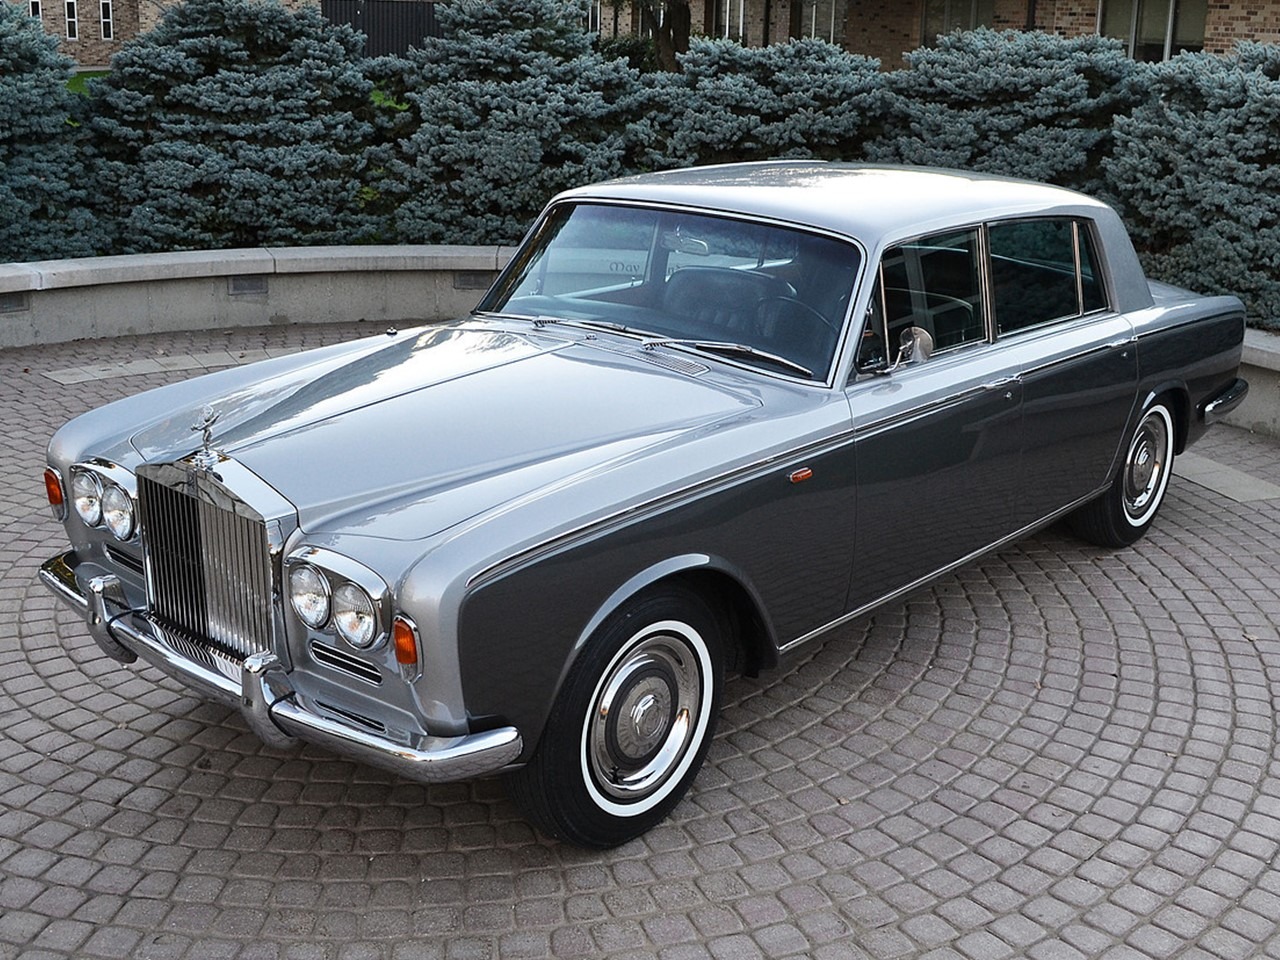 1967 rolls royce silver shadow long wheelbase saloon. Black Bedroom Furniture Sets. Home Design Ideas